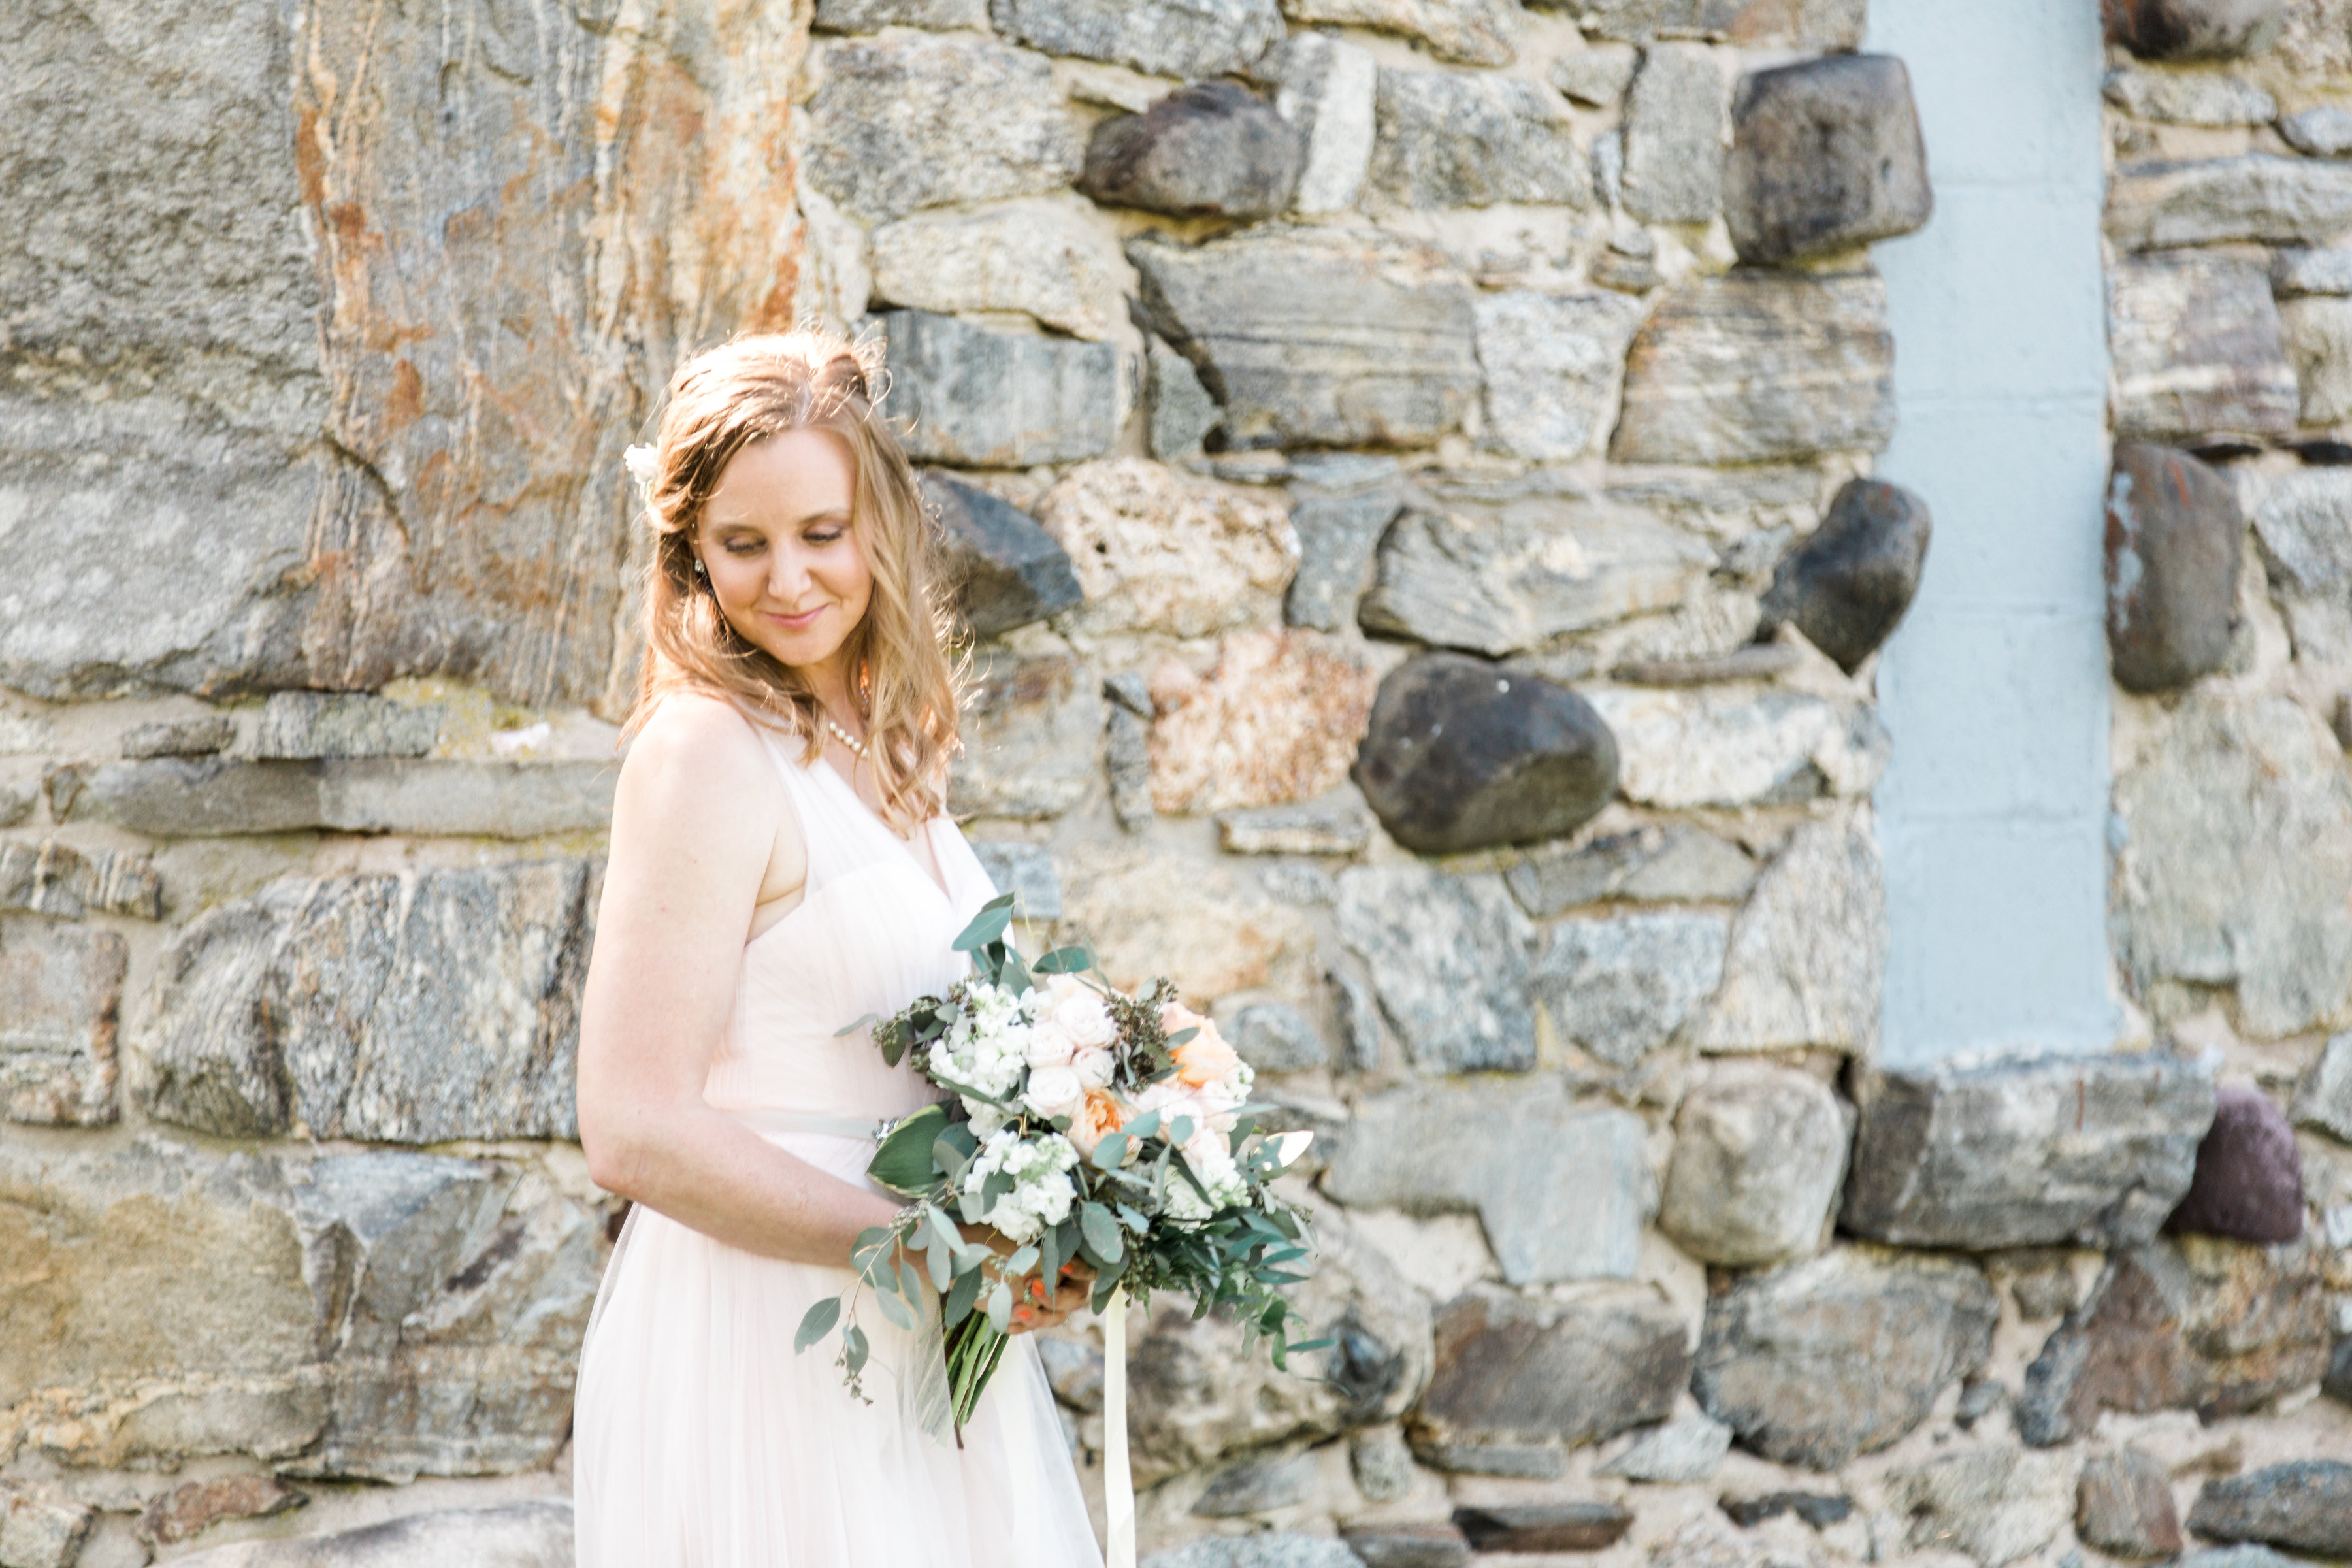 KristinaStaalPhotography-TheCapableBride